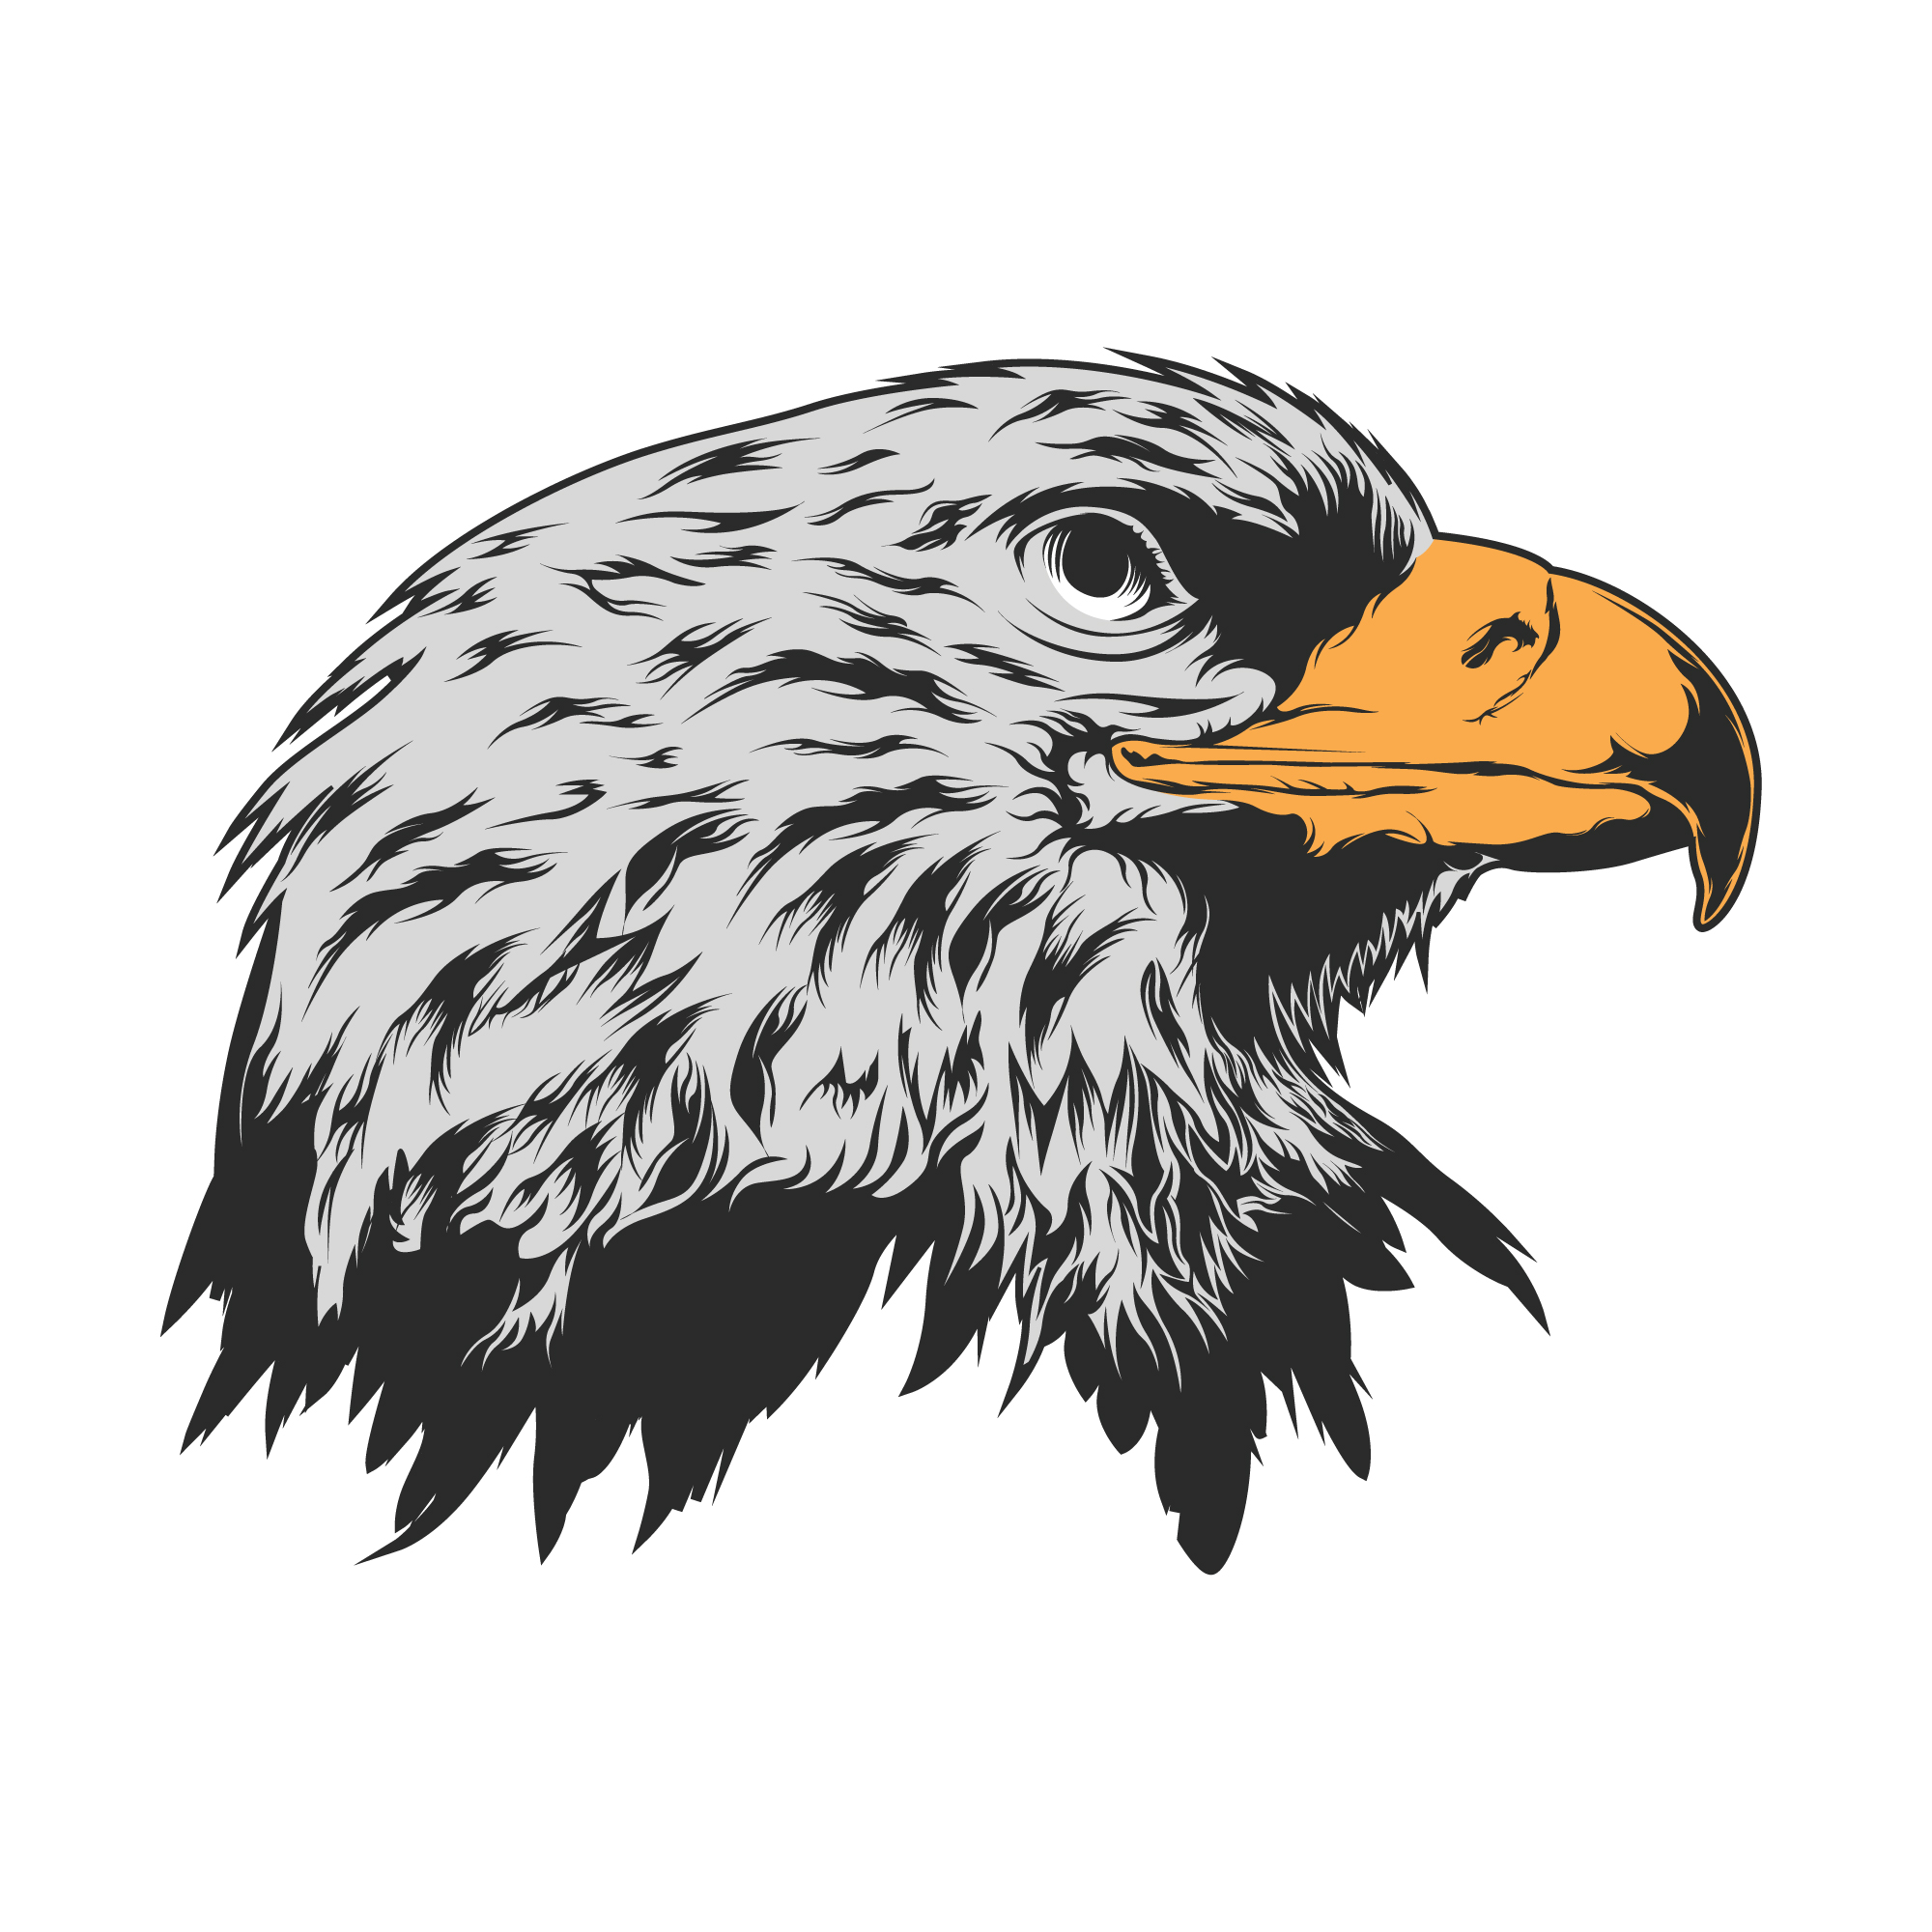 Eagle head background design